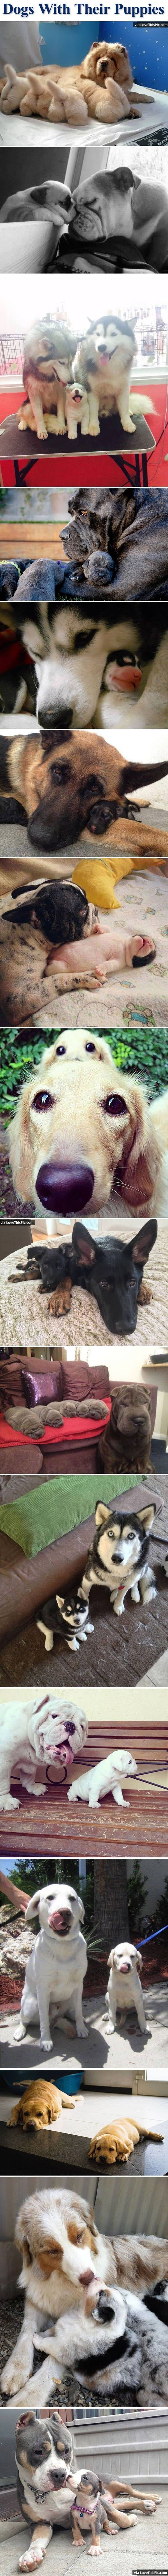 Dogs With Their Puppies cute animals dogs adorable dog puppy animal pets funny animals funny pets funny dogs